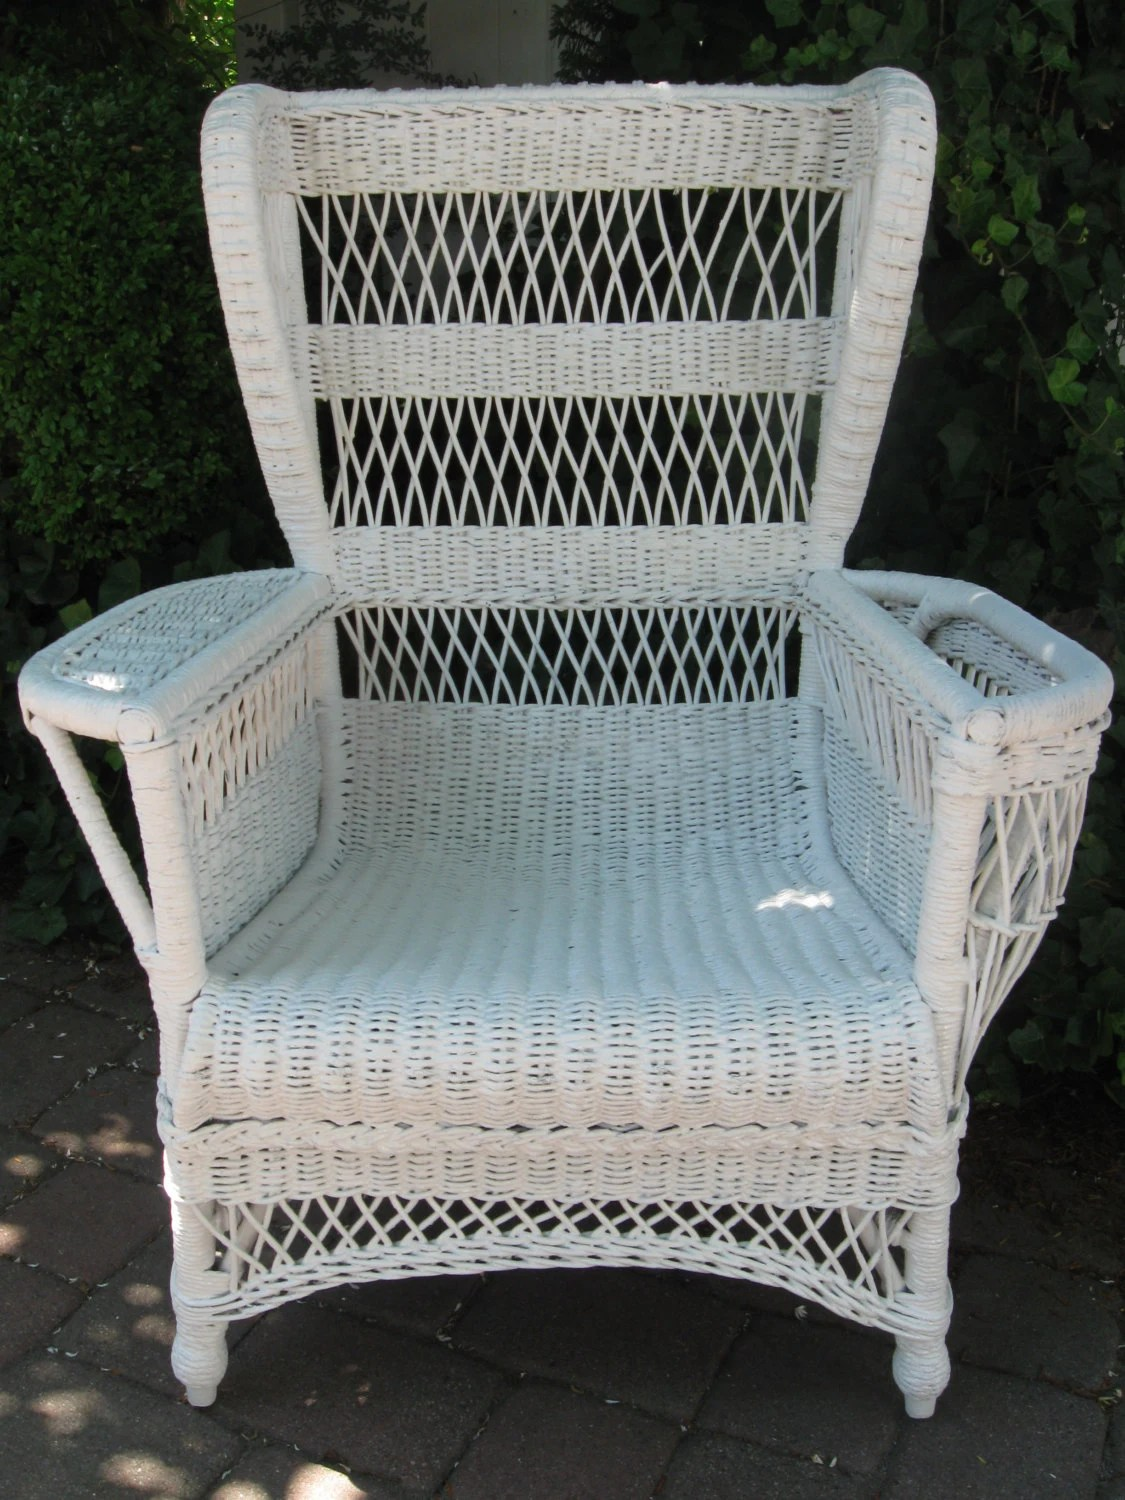 Antique Wicker Chairs Vintage Wicker Chair Bar Harbor Treasury Item